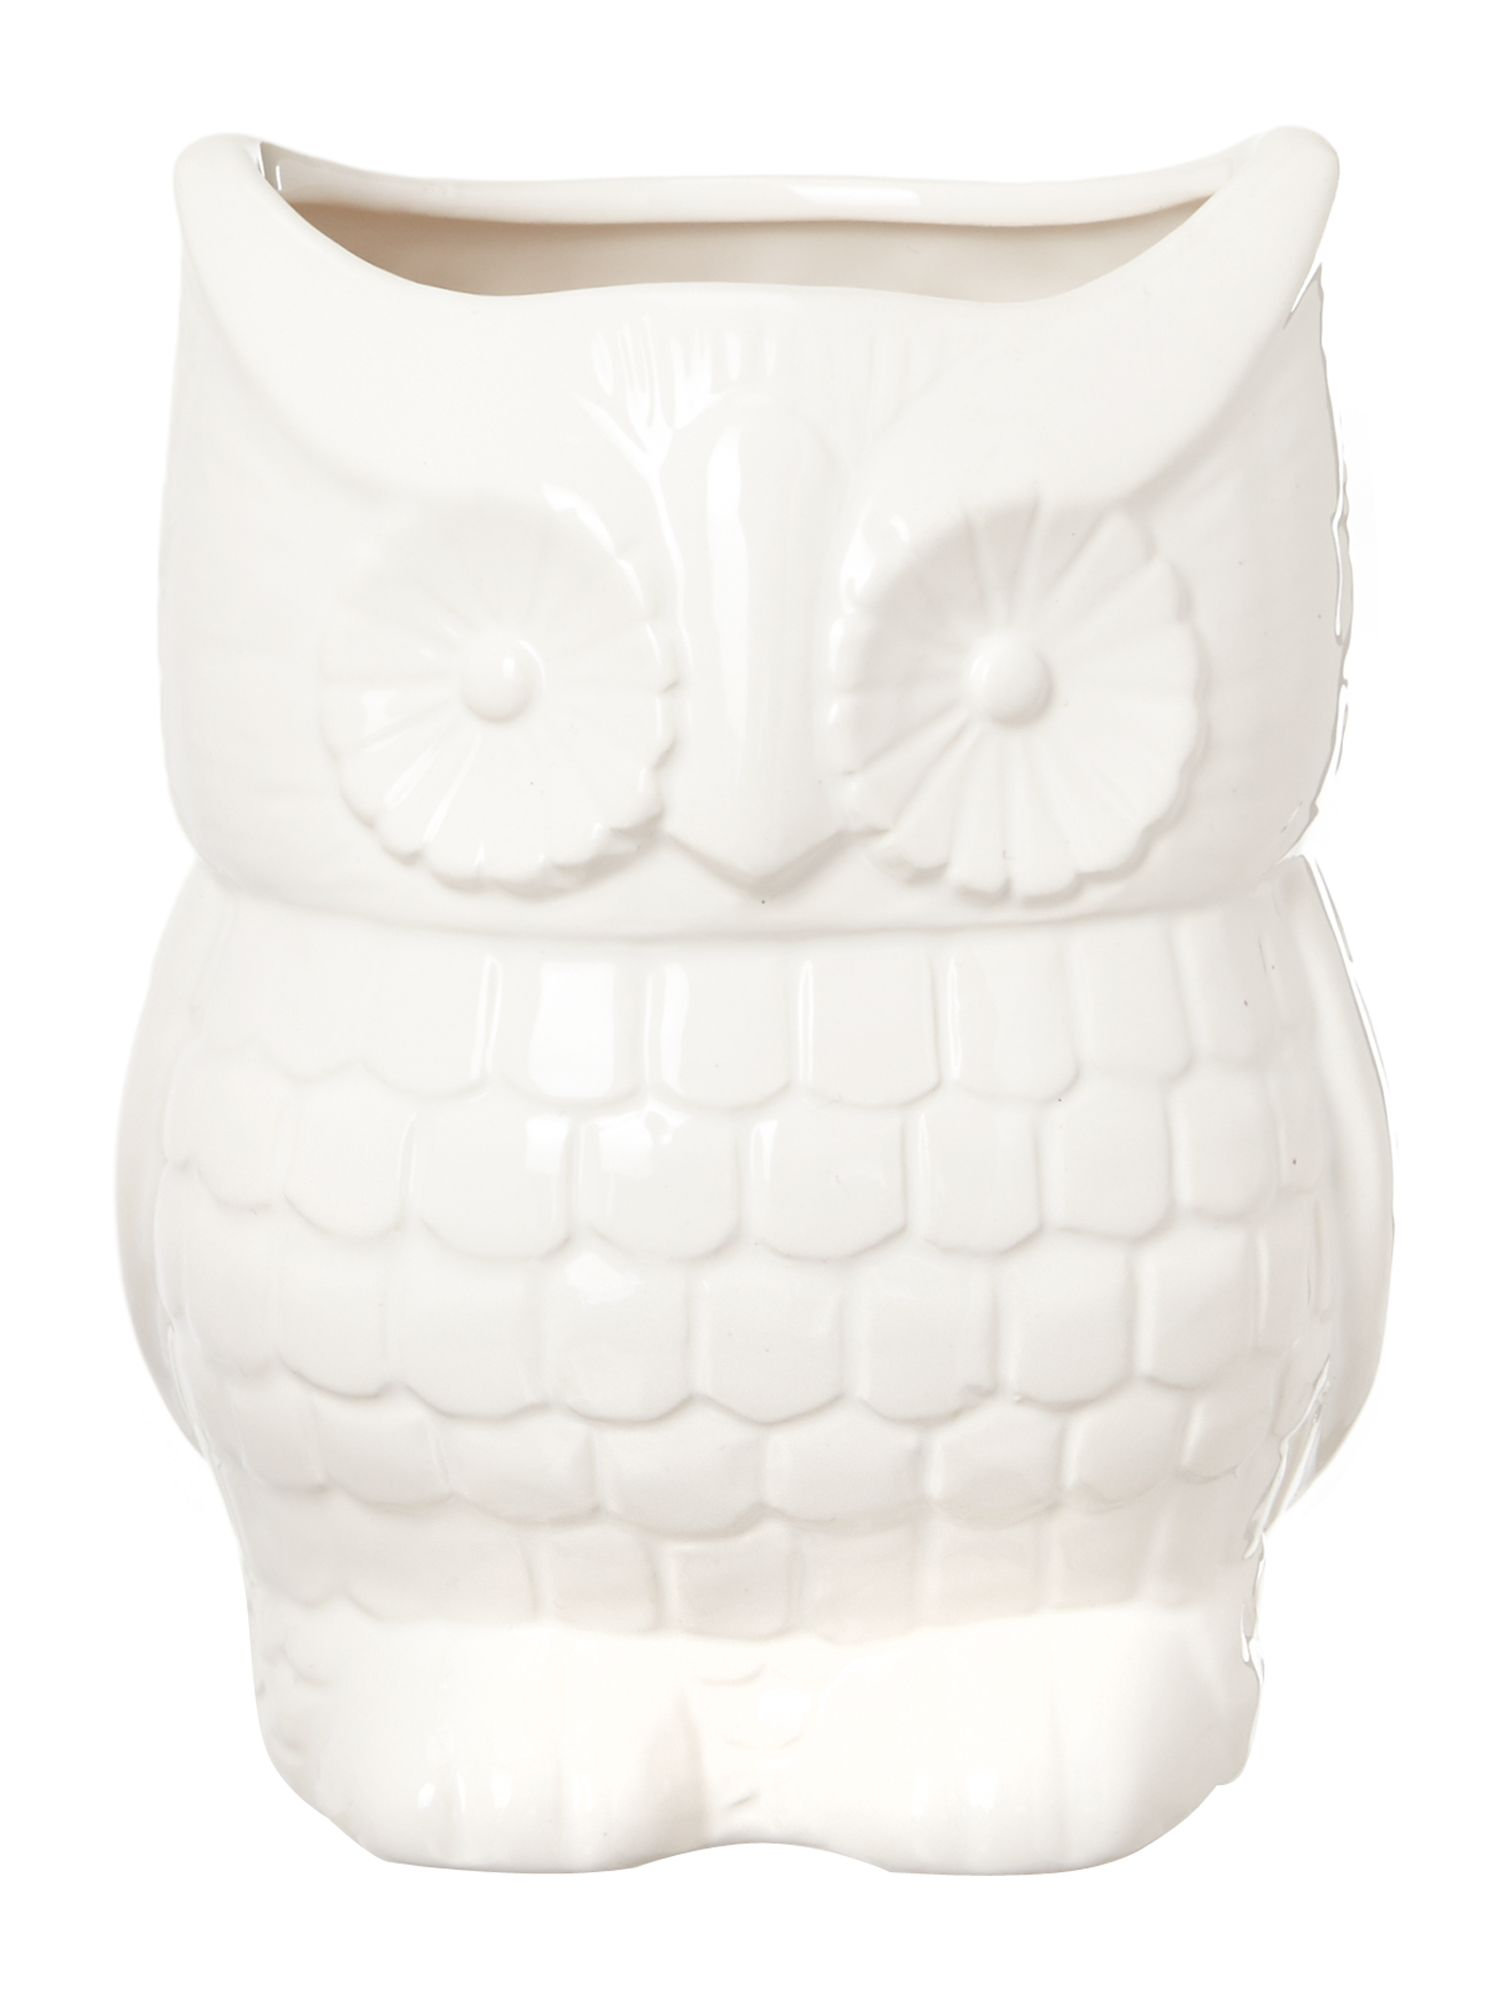 Owl utensil jar